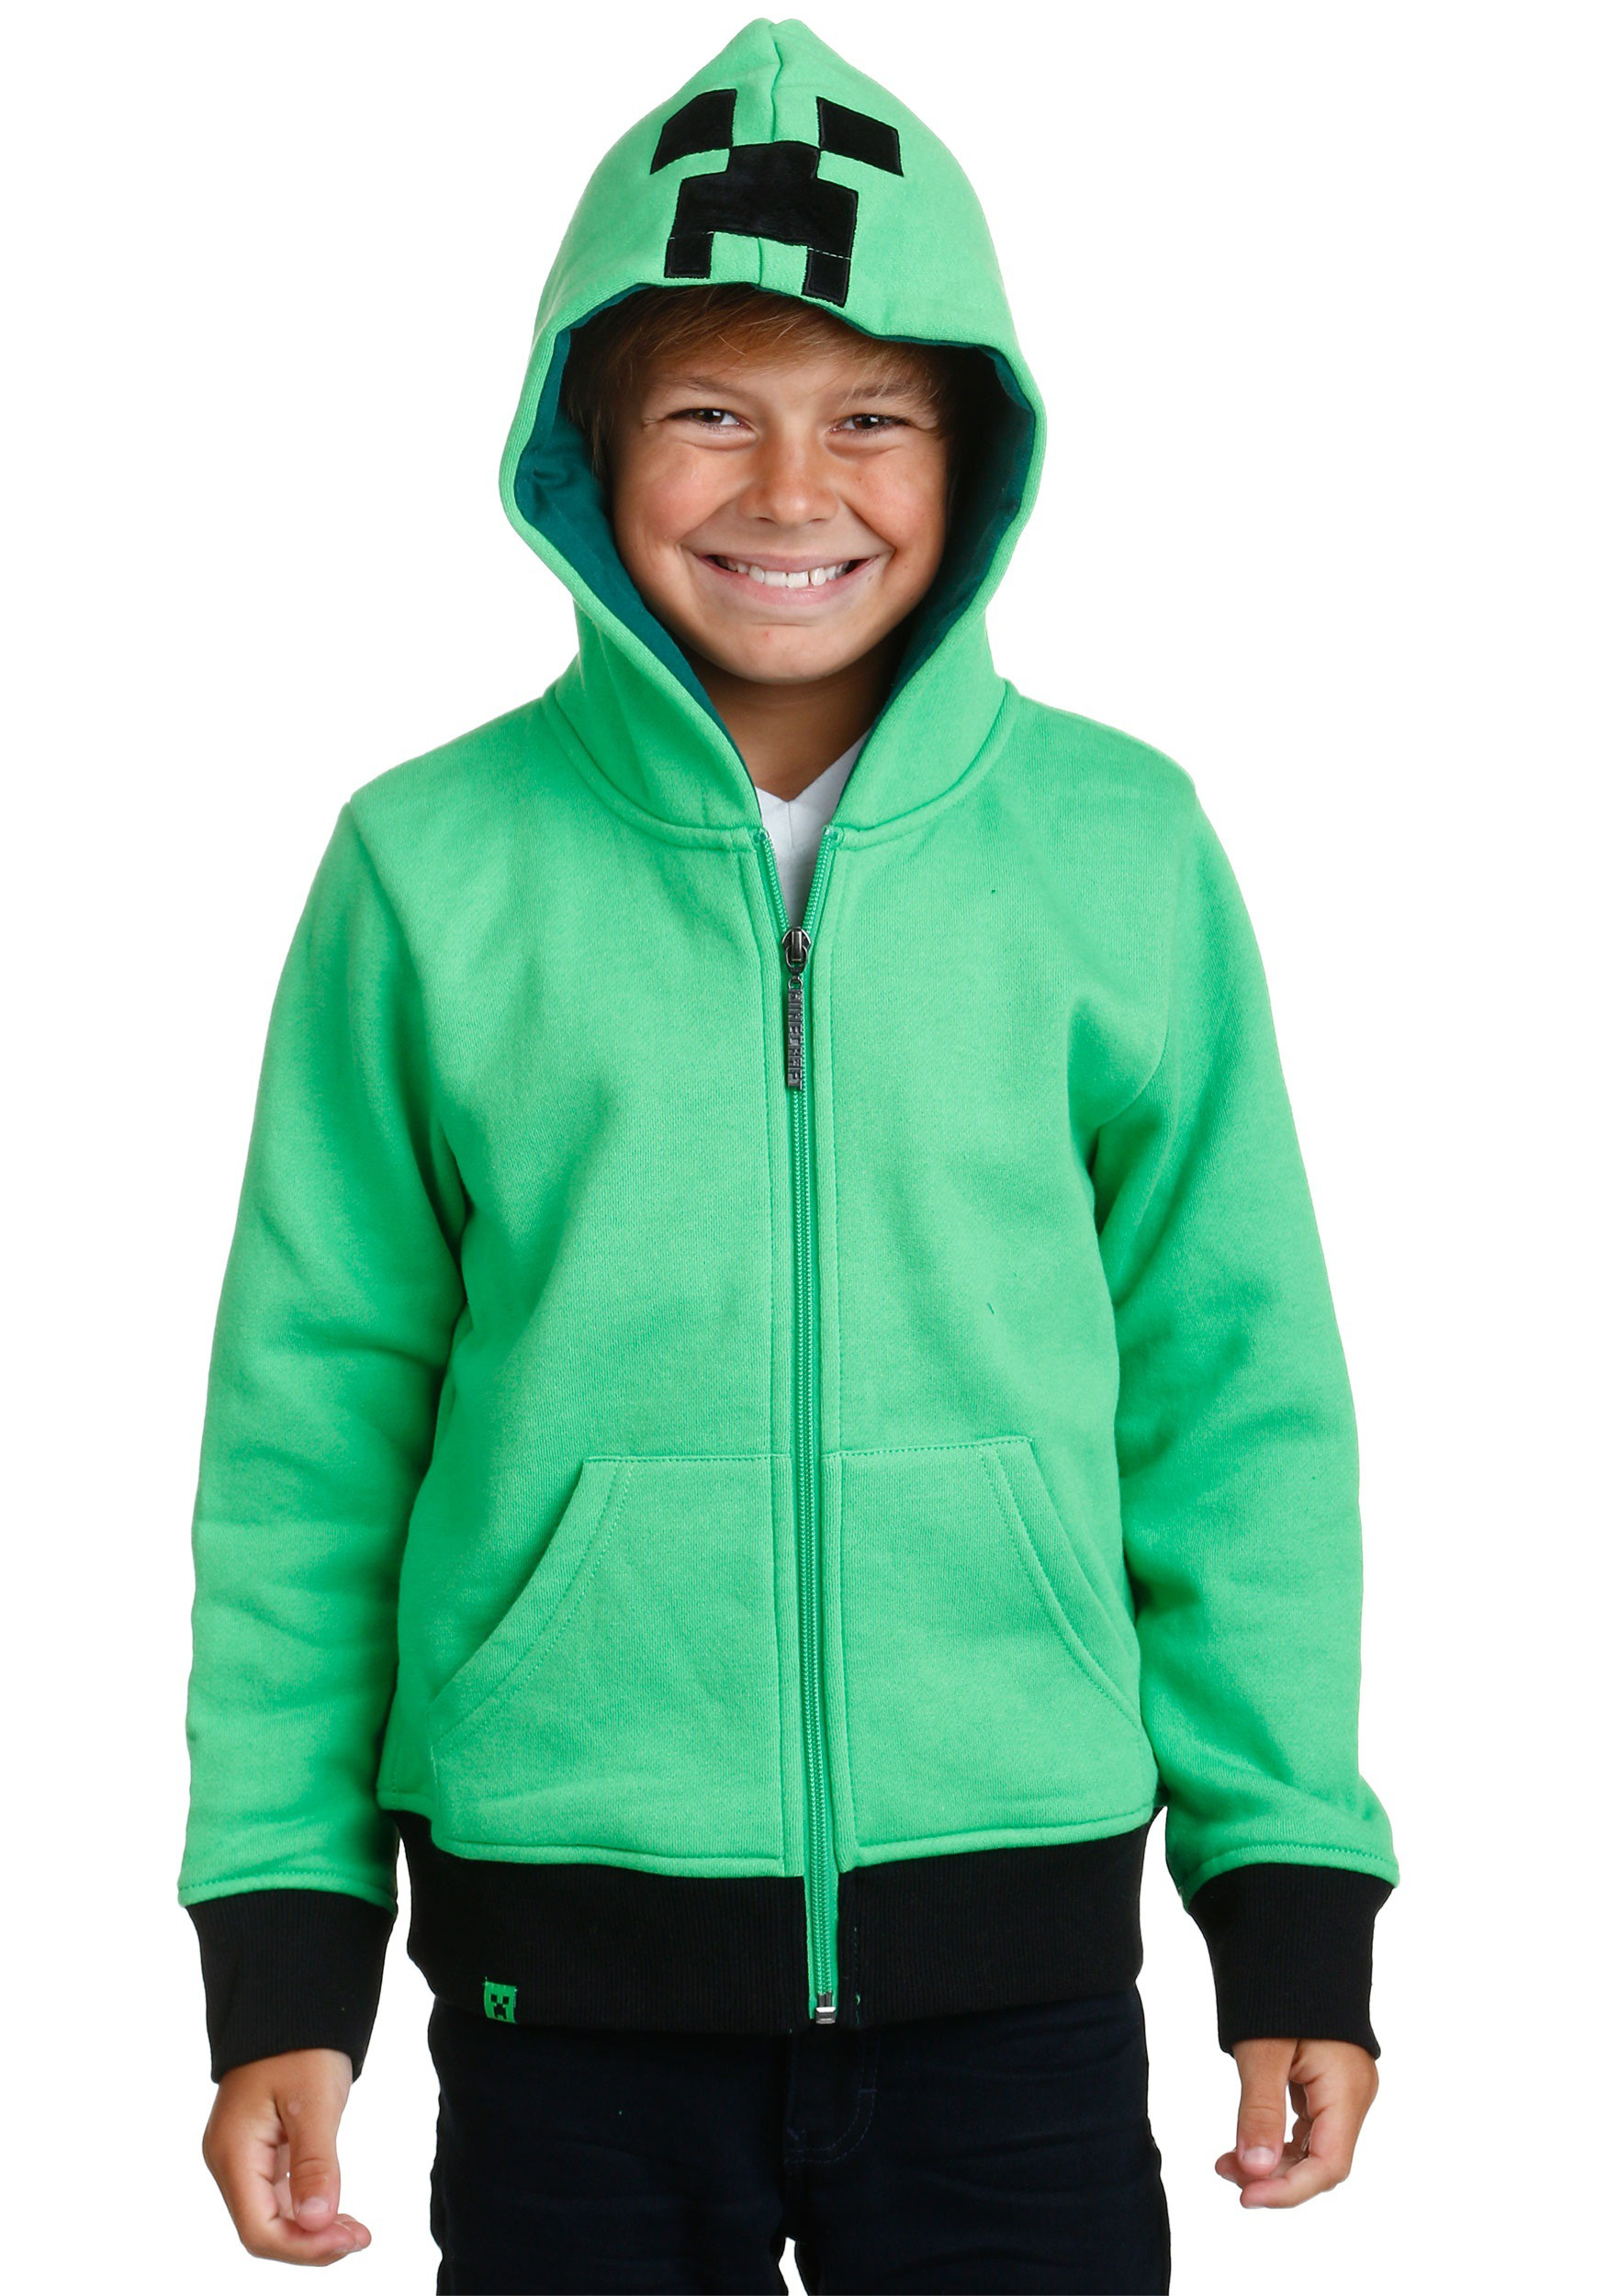 Kids Creeper Anatomy Costume Hoodie From Minecraft